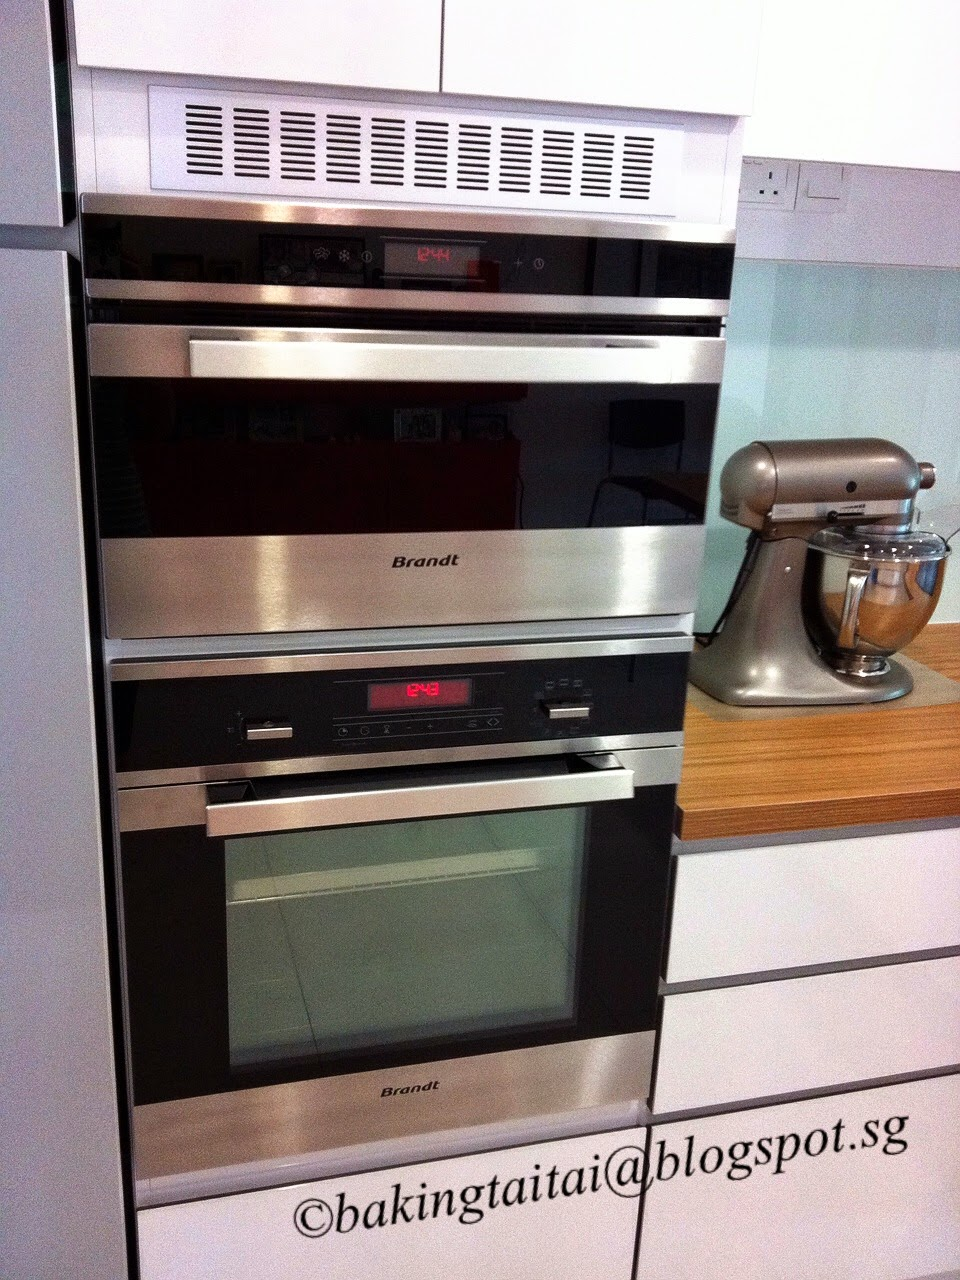 My New Dry Kitchen and Brandt Kitchen appliances 我的新烘焙乐园和厨房电器